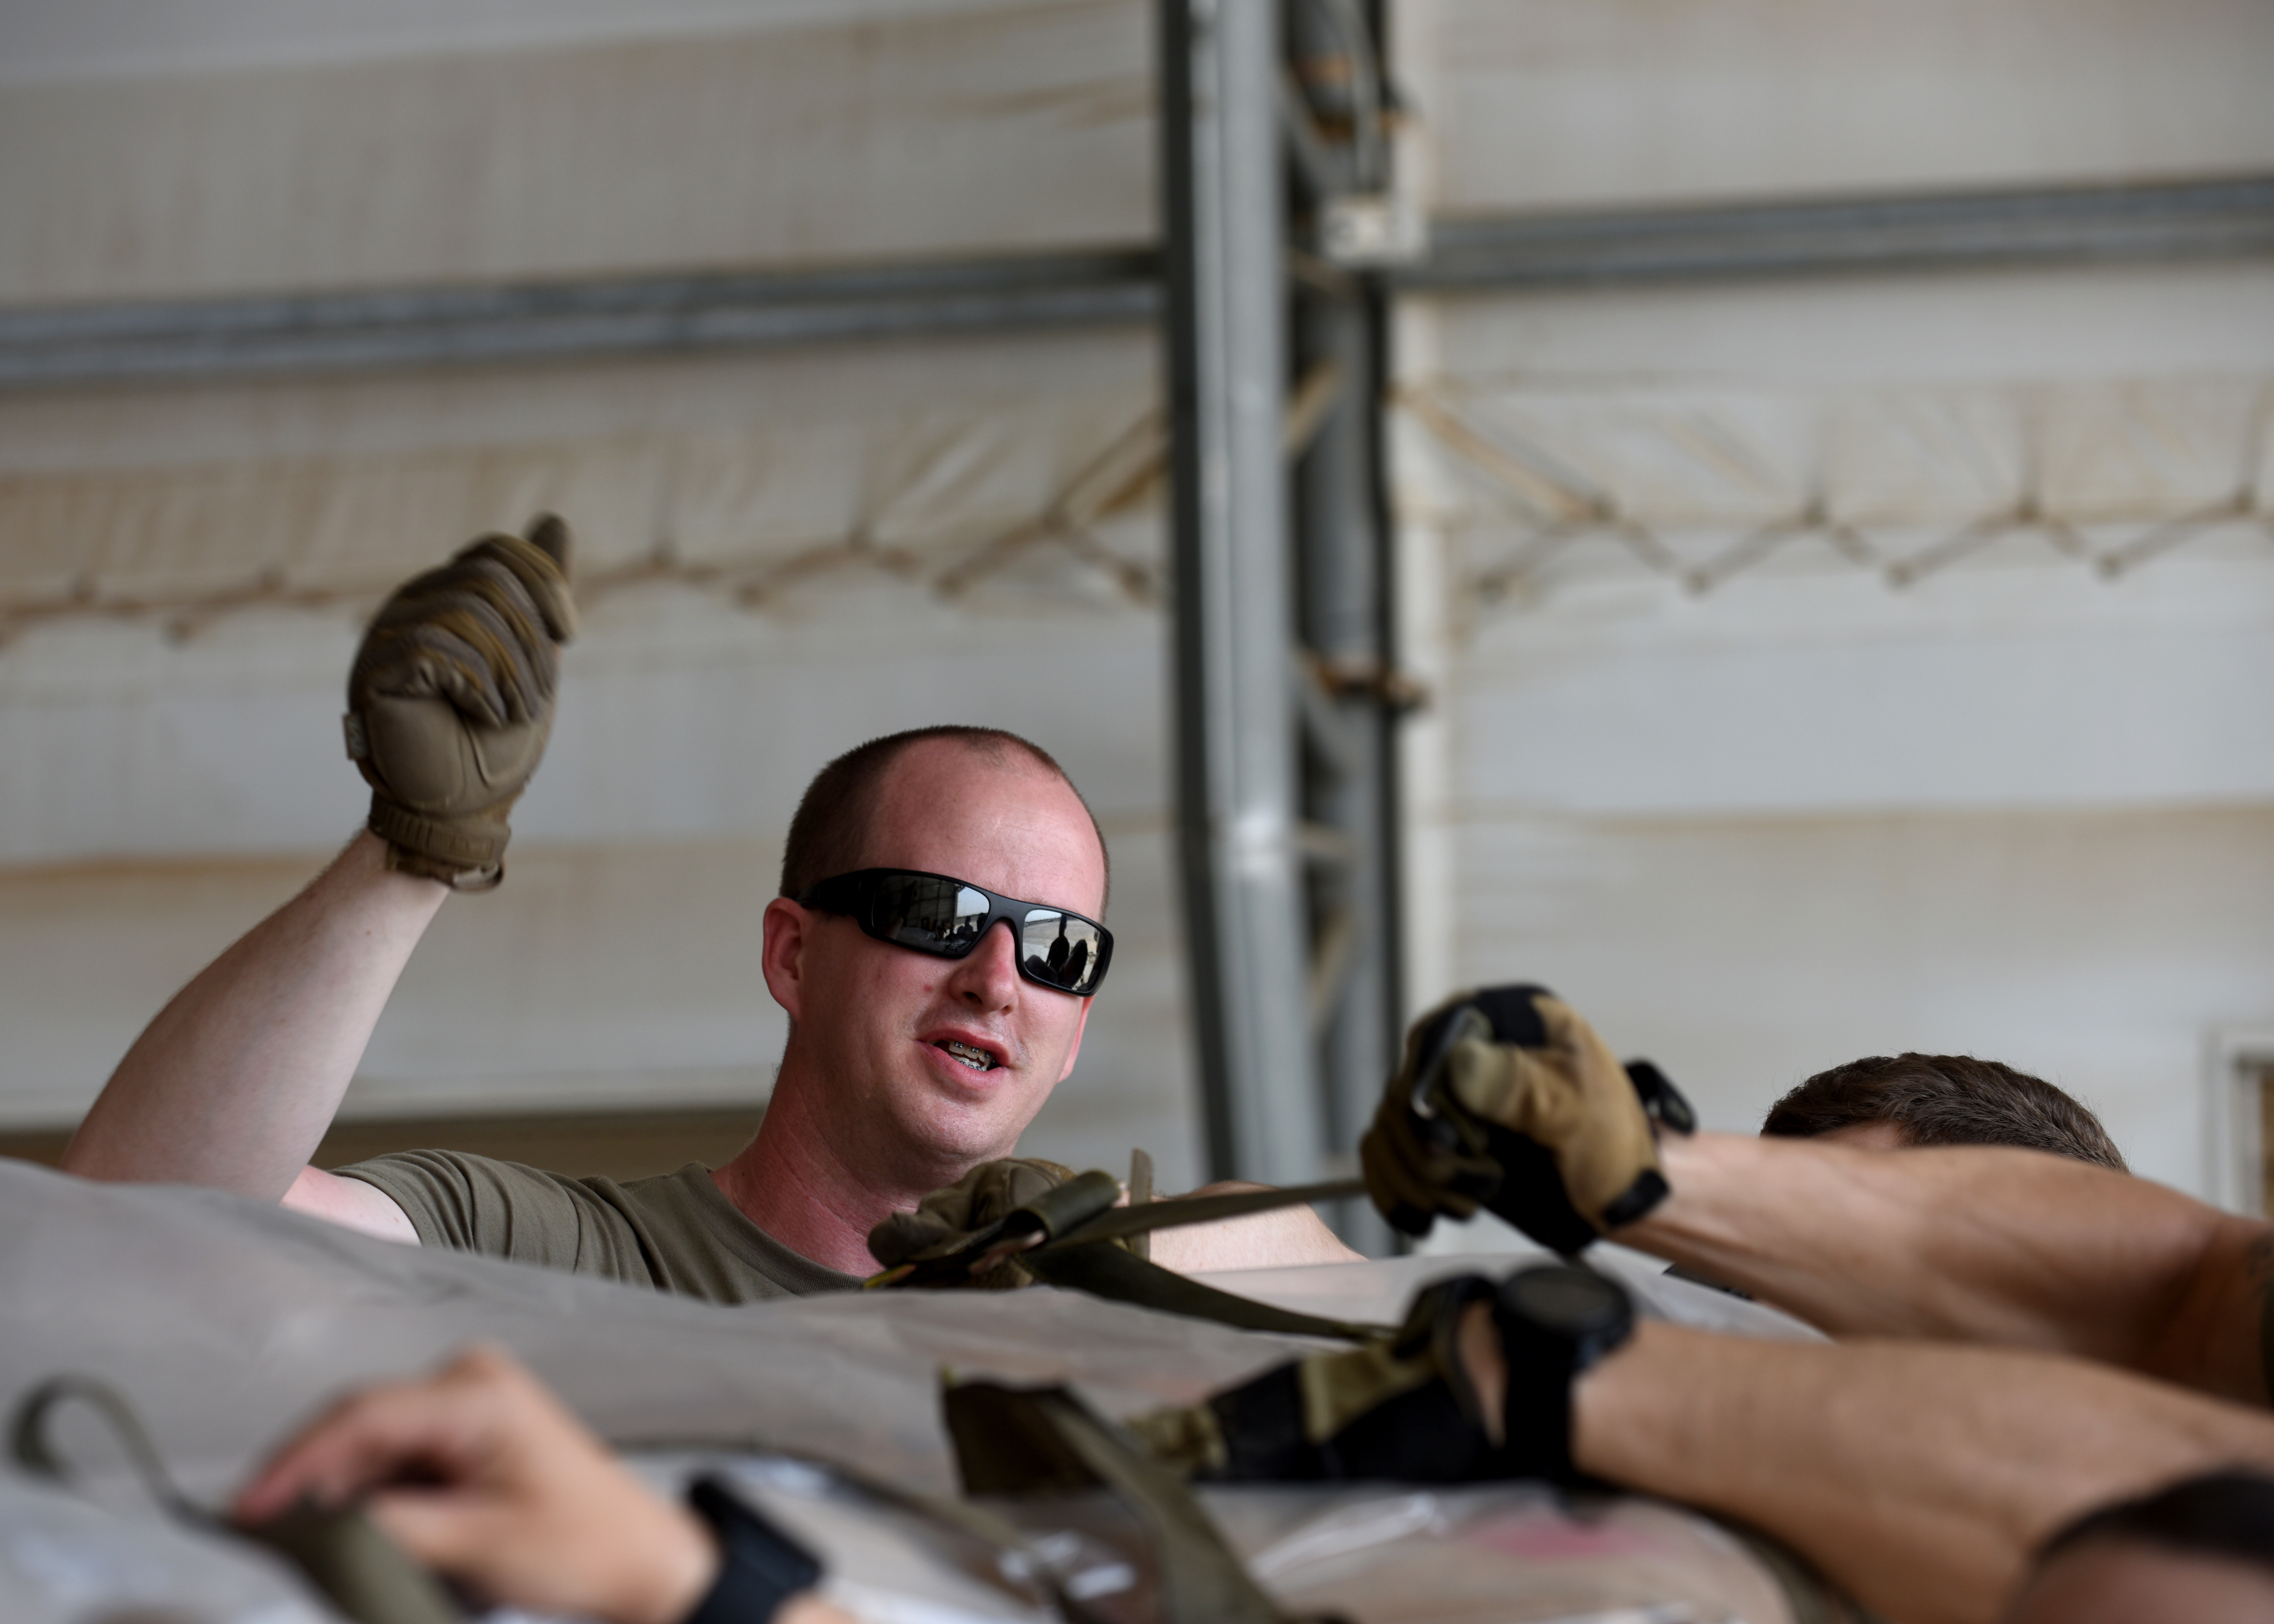 U.S. Air Force Staff Sgt. Alan Wells, mobile aerial port supervisor for the 435th Contingency Response Group, Ramstein Air Base, Germany, currently at Camp Lemonnier, Djibouti, supporting Combined Joint Task Force-Horn of Africa (CJTF-HOA), ties U.S. Agency for International Development (USAID) food supplies onto a cargo pallet at Camp Lemonnier, April 1, 2019, for the U.S. Department of Defense's (DoD) humanitarian relief effort in the Republic of Mozambique and surrounding areas following Cyclone Idai. Teams supporting CJTF-HOA, which is leading the DoD relief effort, prepared cargo for transport following a call for assistance from the USAID Disaster Assistance Response Team. (U.S. Air Force photo by Staff Sgt. Franklin R. Ramos)